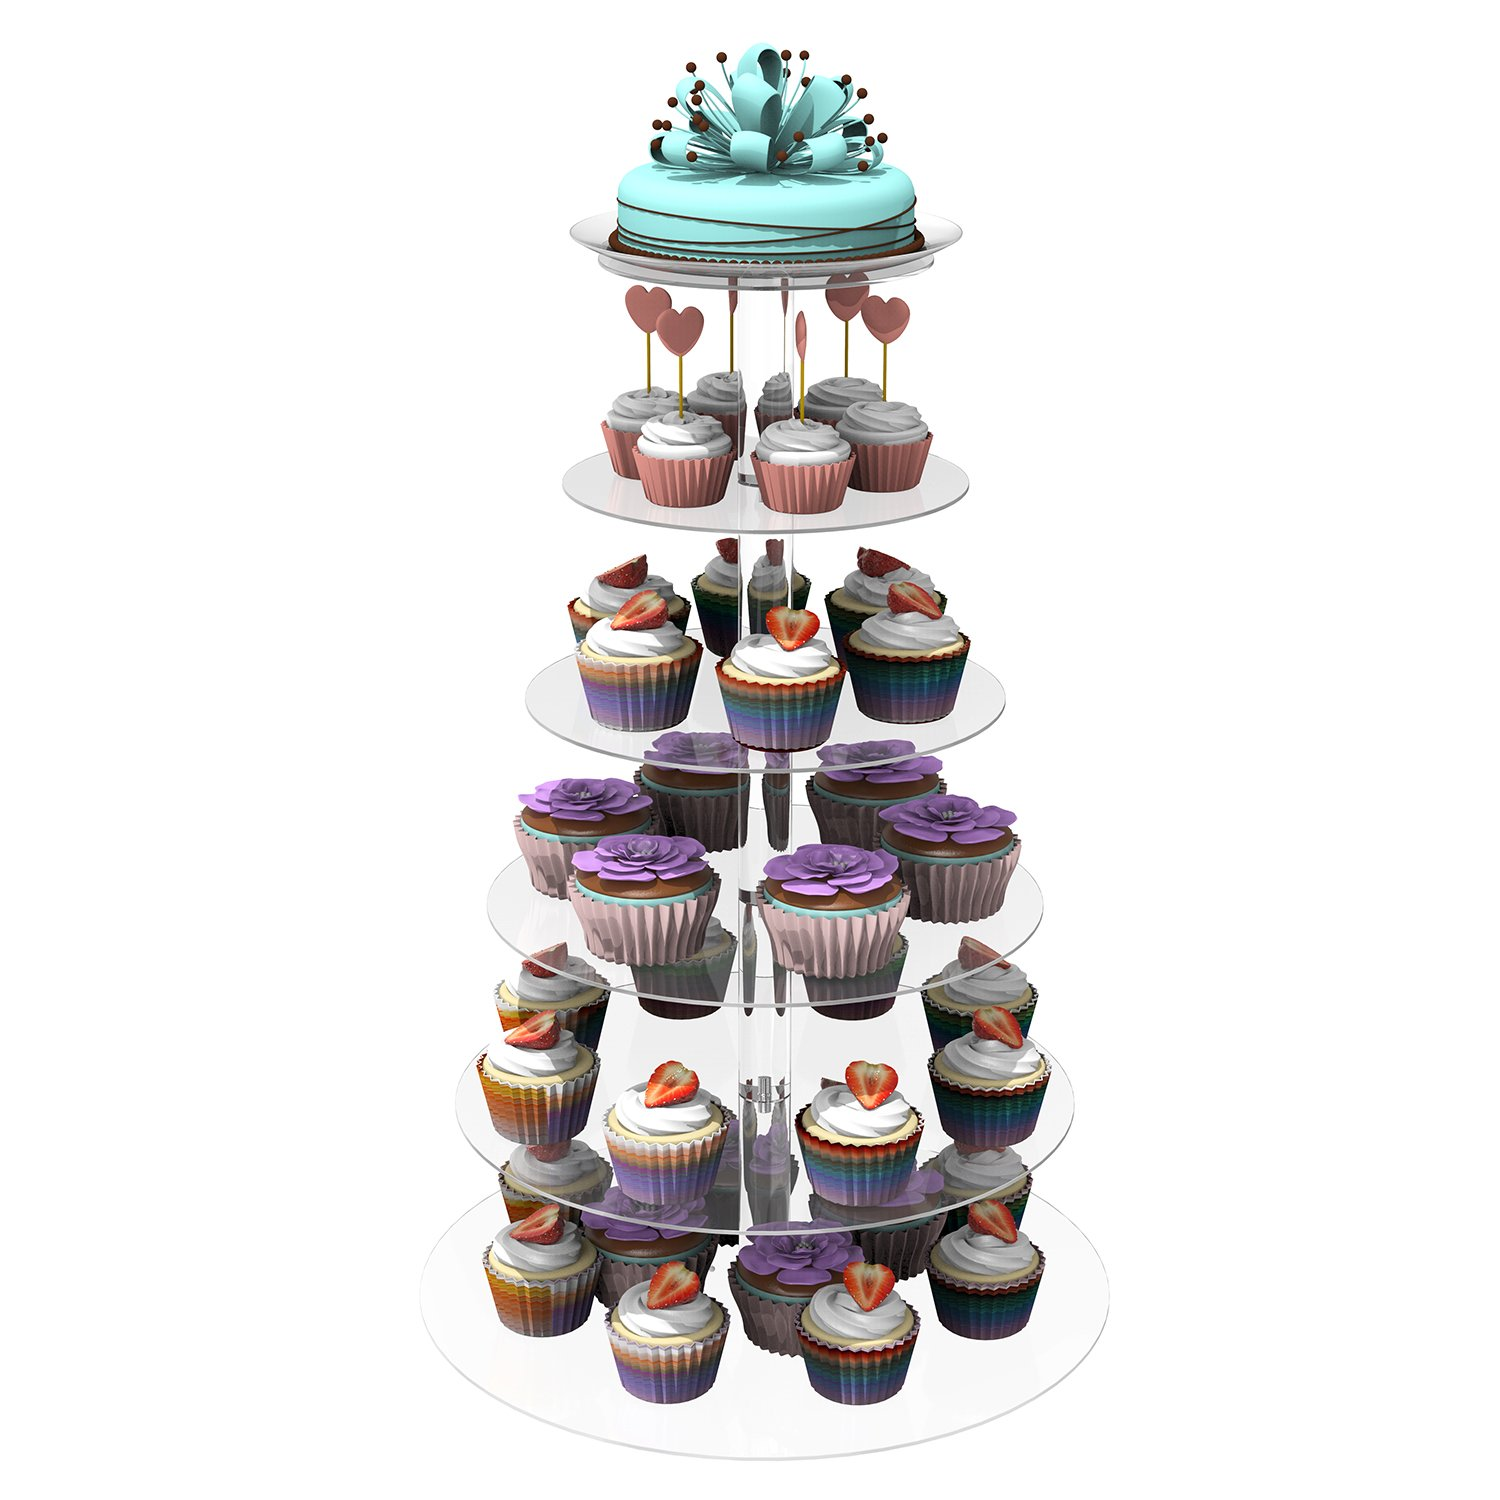 Homdox 6 Tier Cupcake Stand Pastry Stand Cake Dessert Holder Cupcake Tower Wedding Party